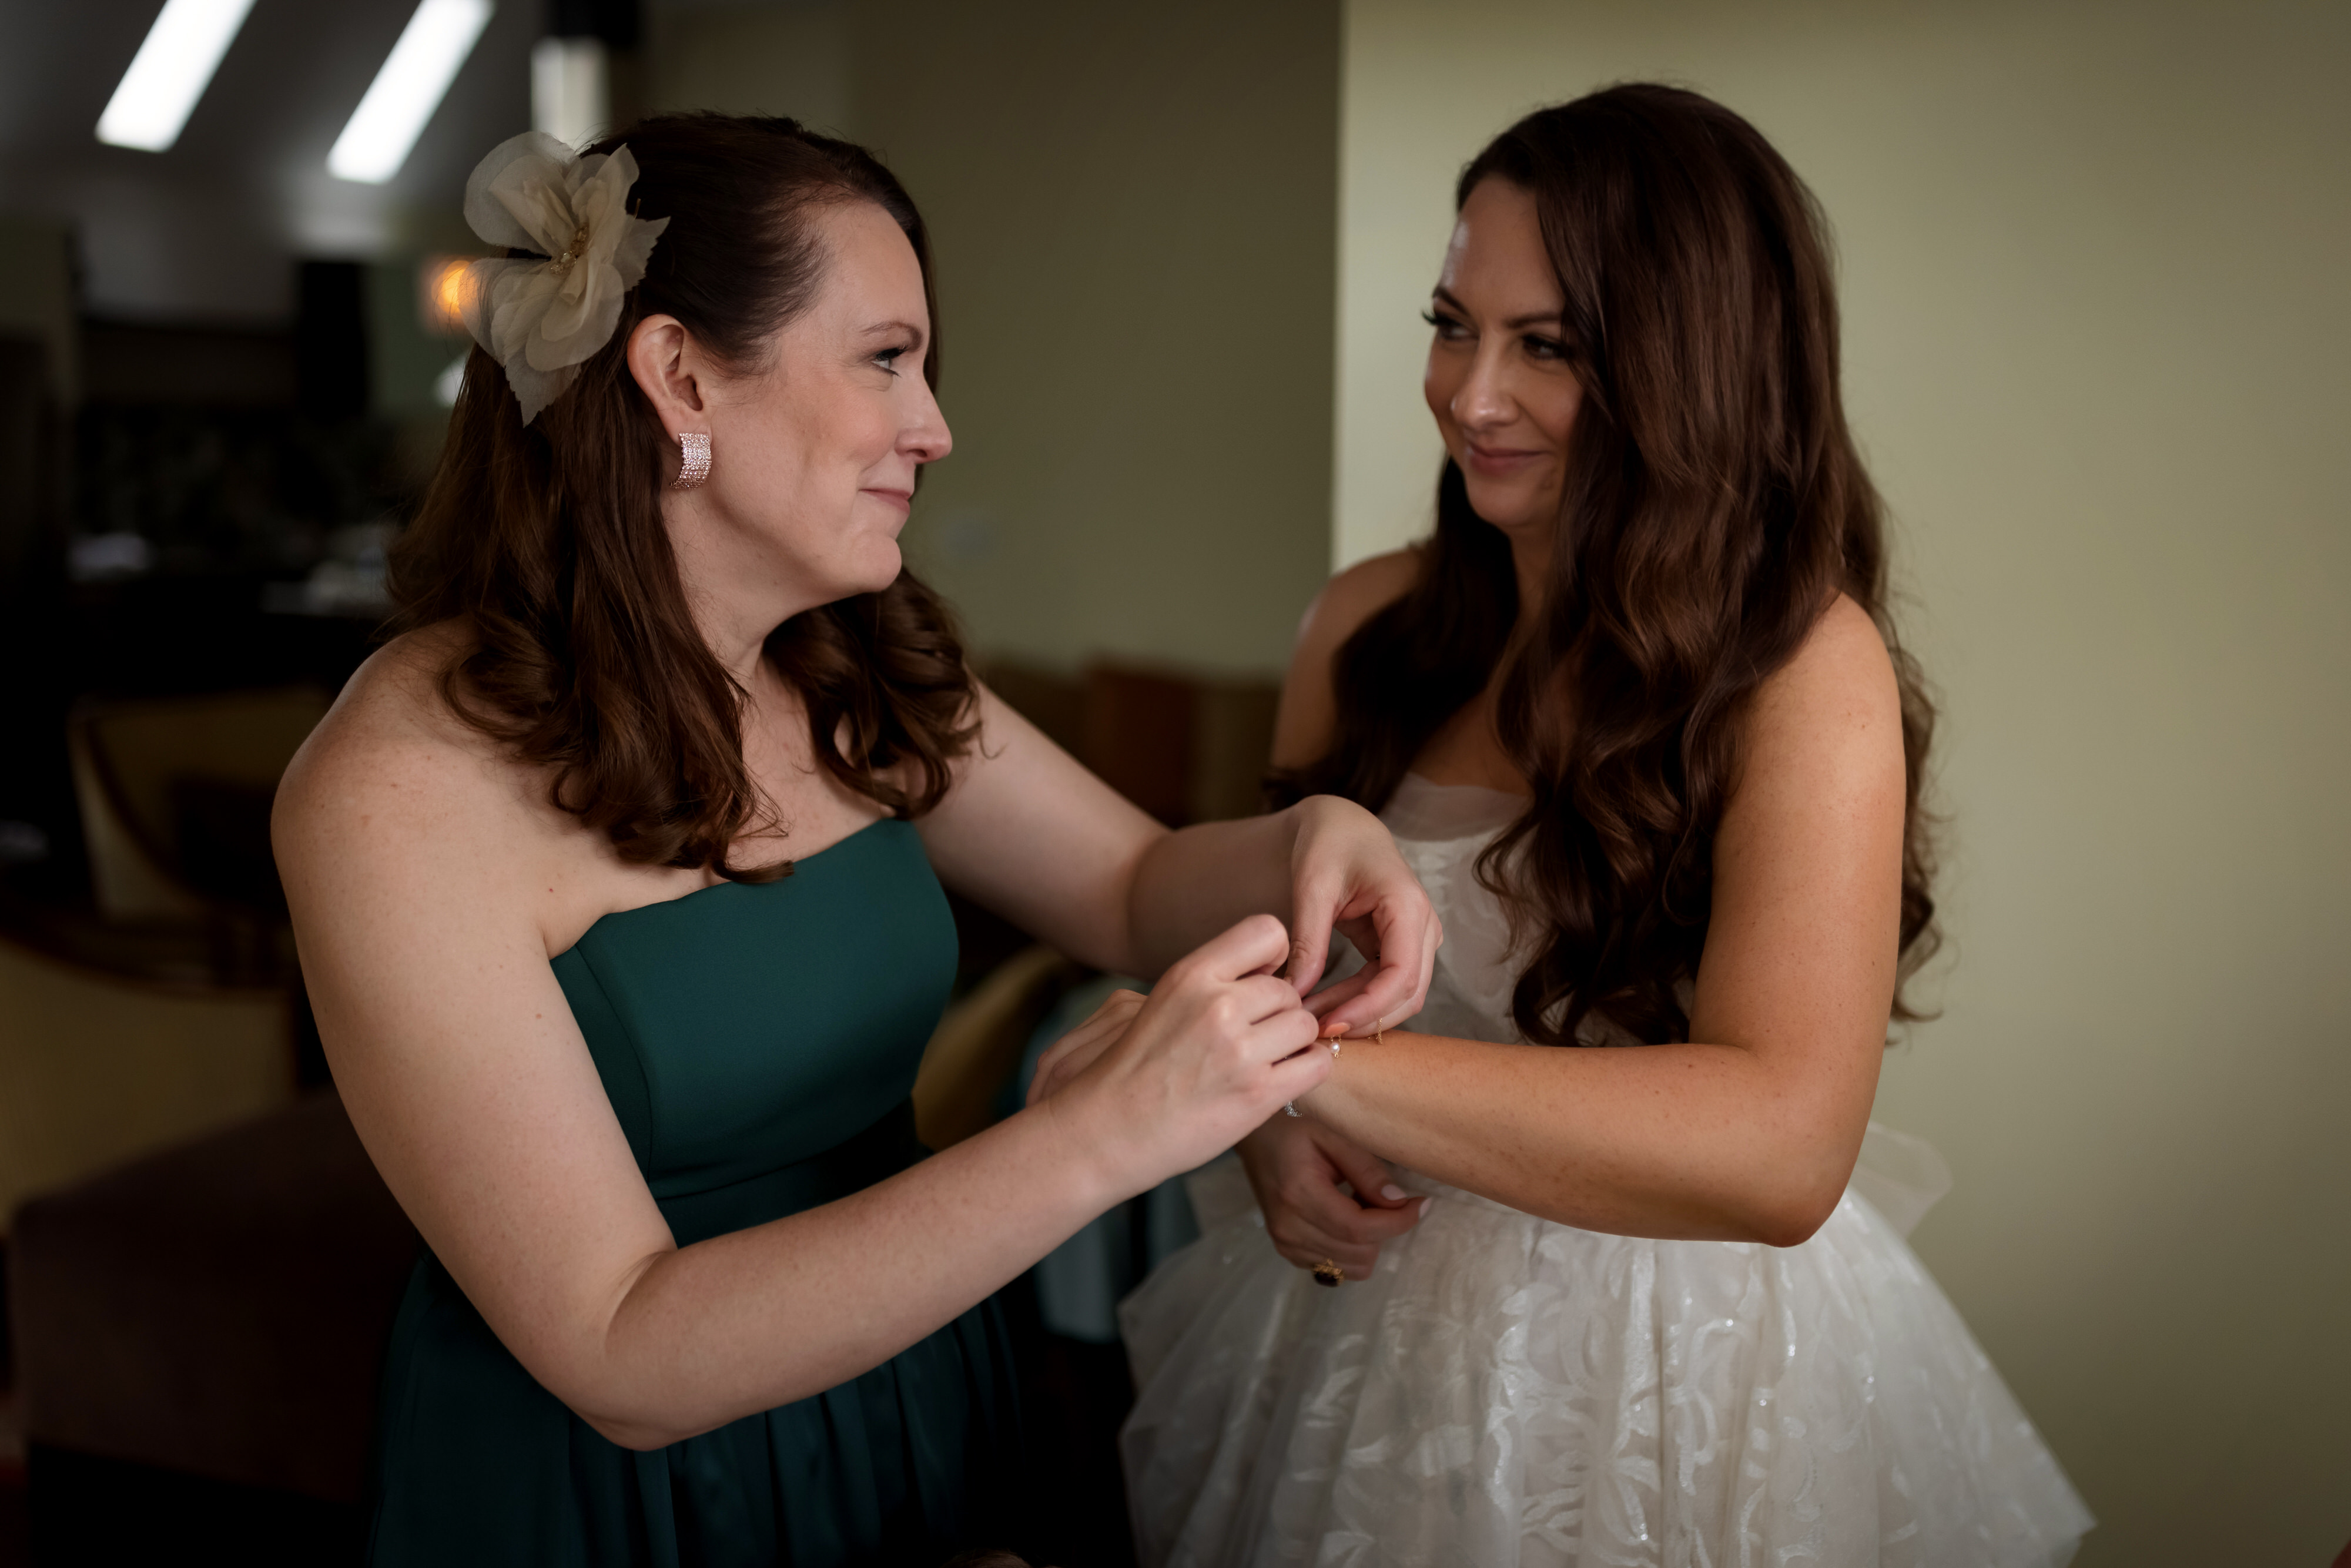 sister helps bride put on jewelry while getting ready for wedding